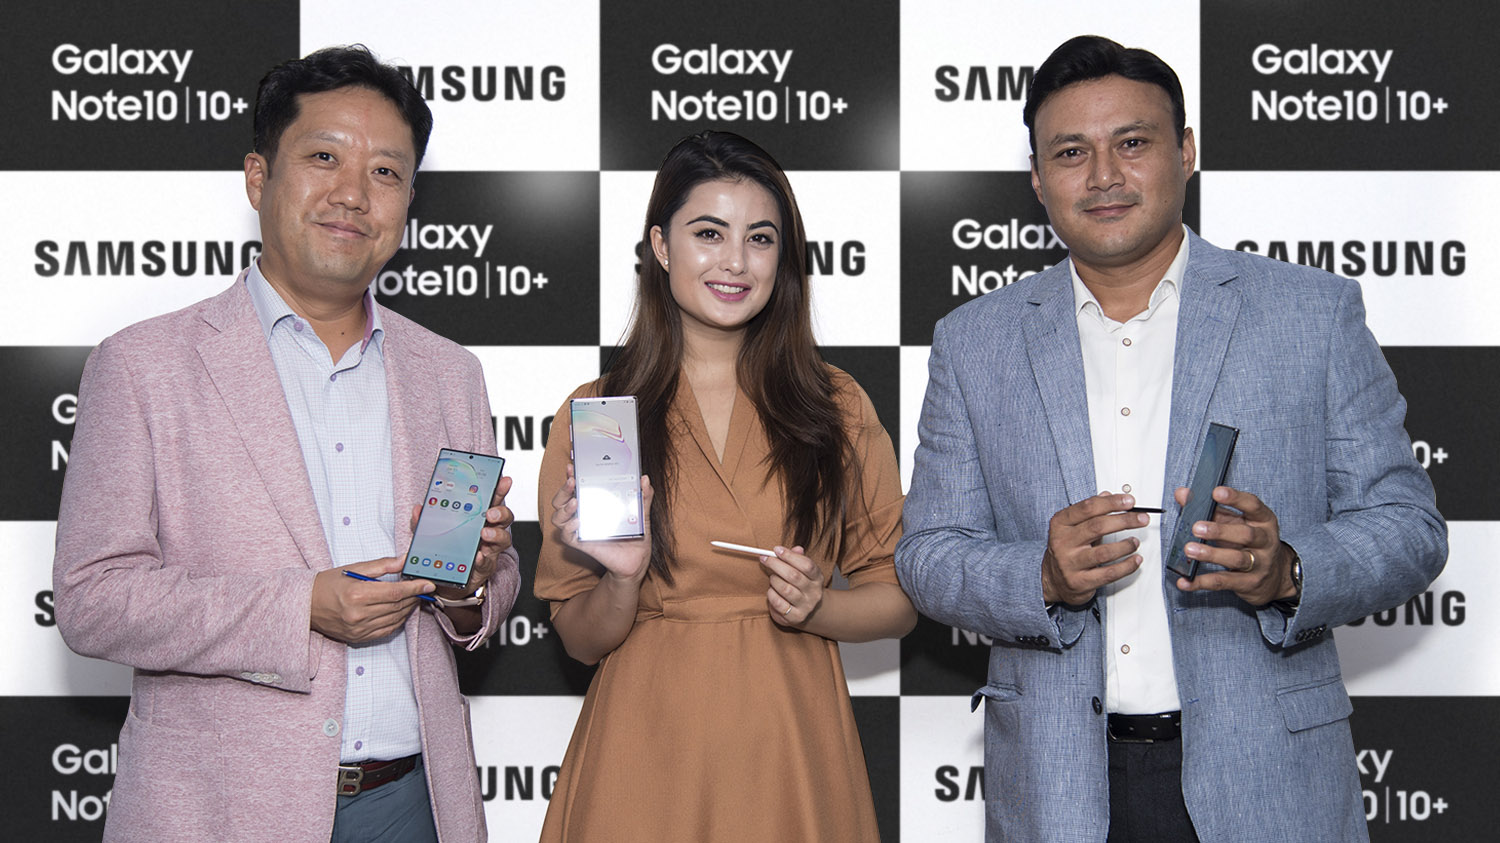 Samsung Galaxy Note 10 Plus Price in Nepal